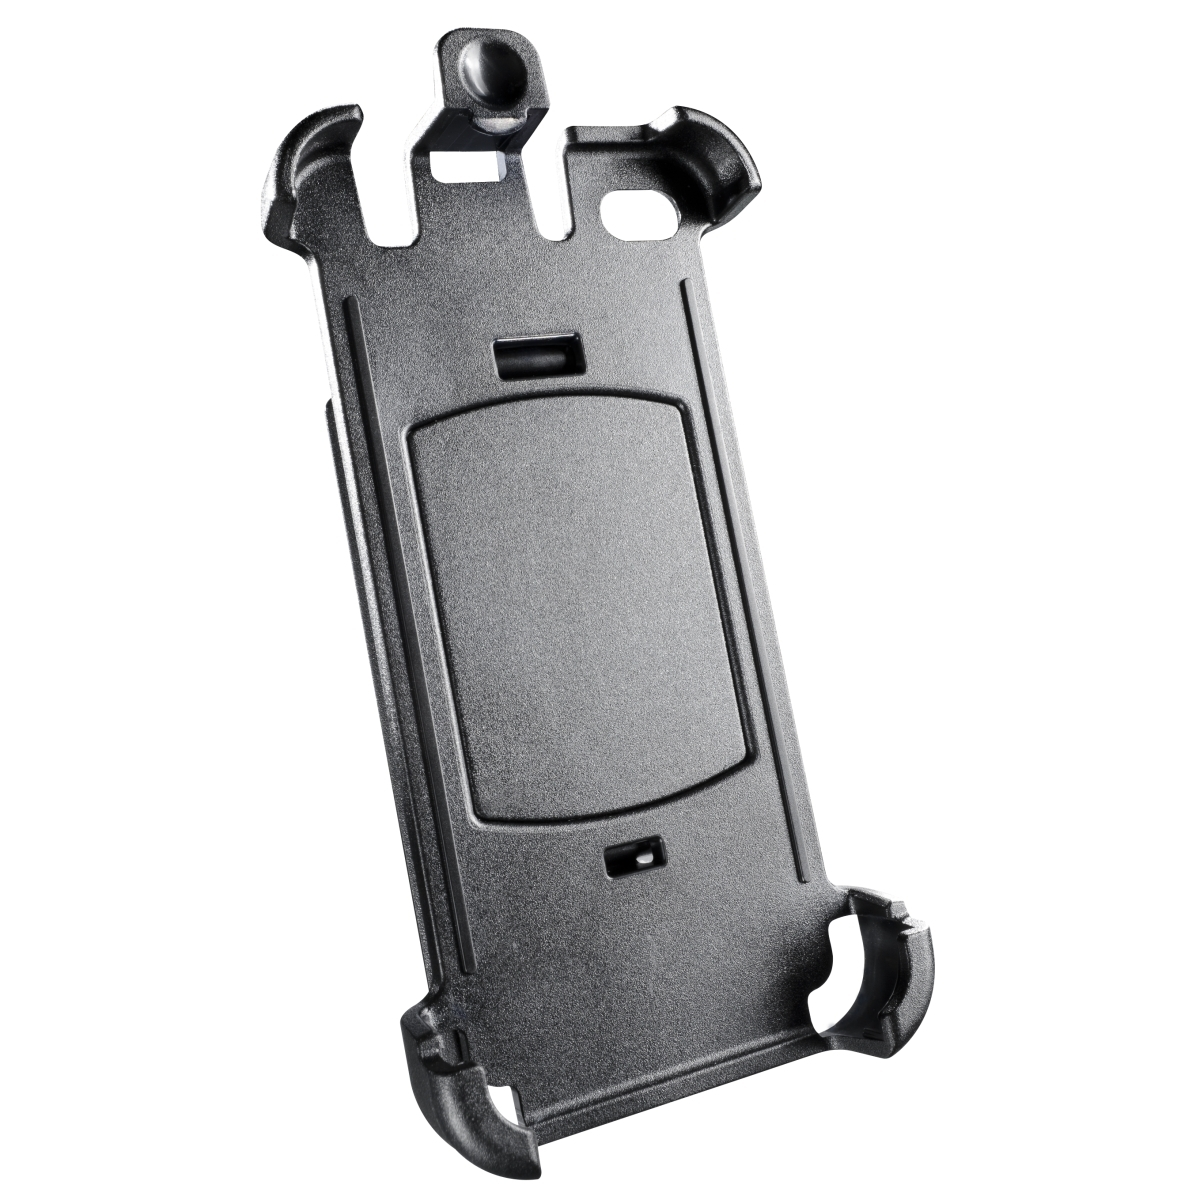 Walimex pro Apple iPhone 4/4S Halter Schwanenhals